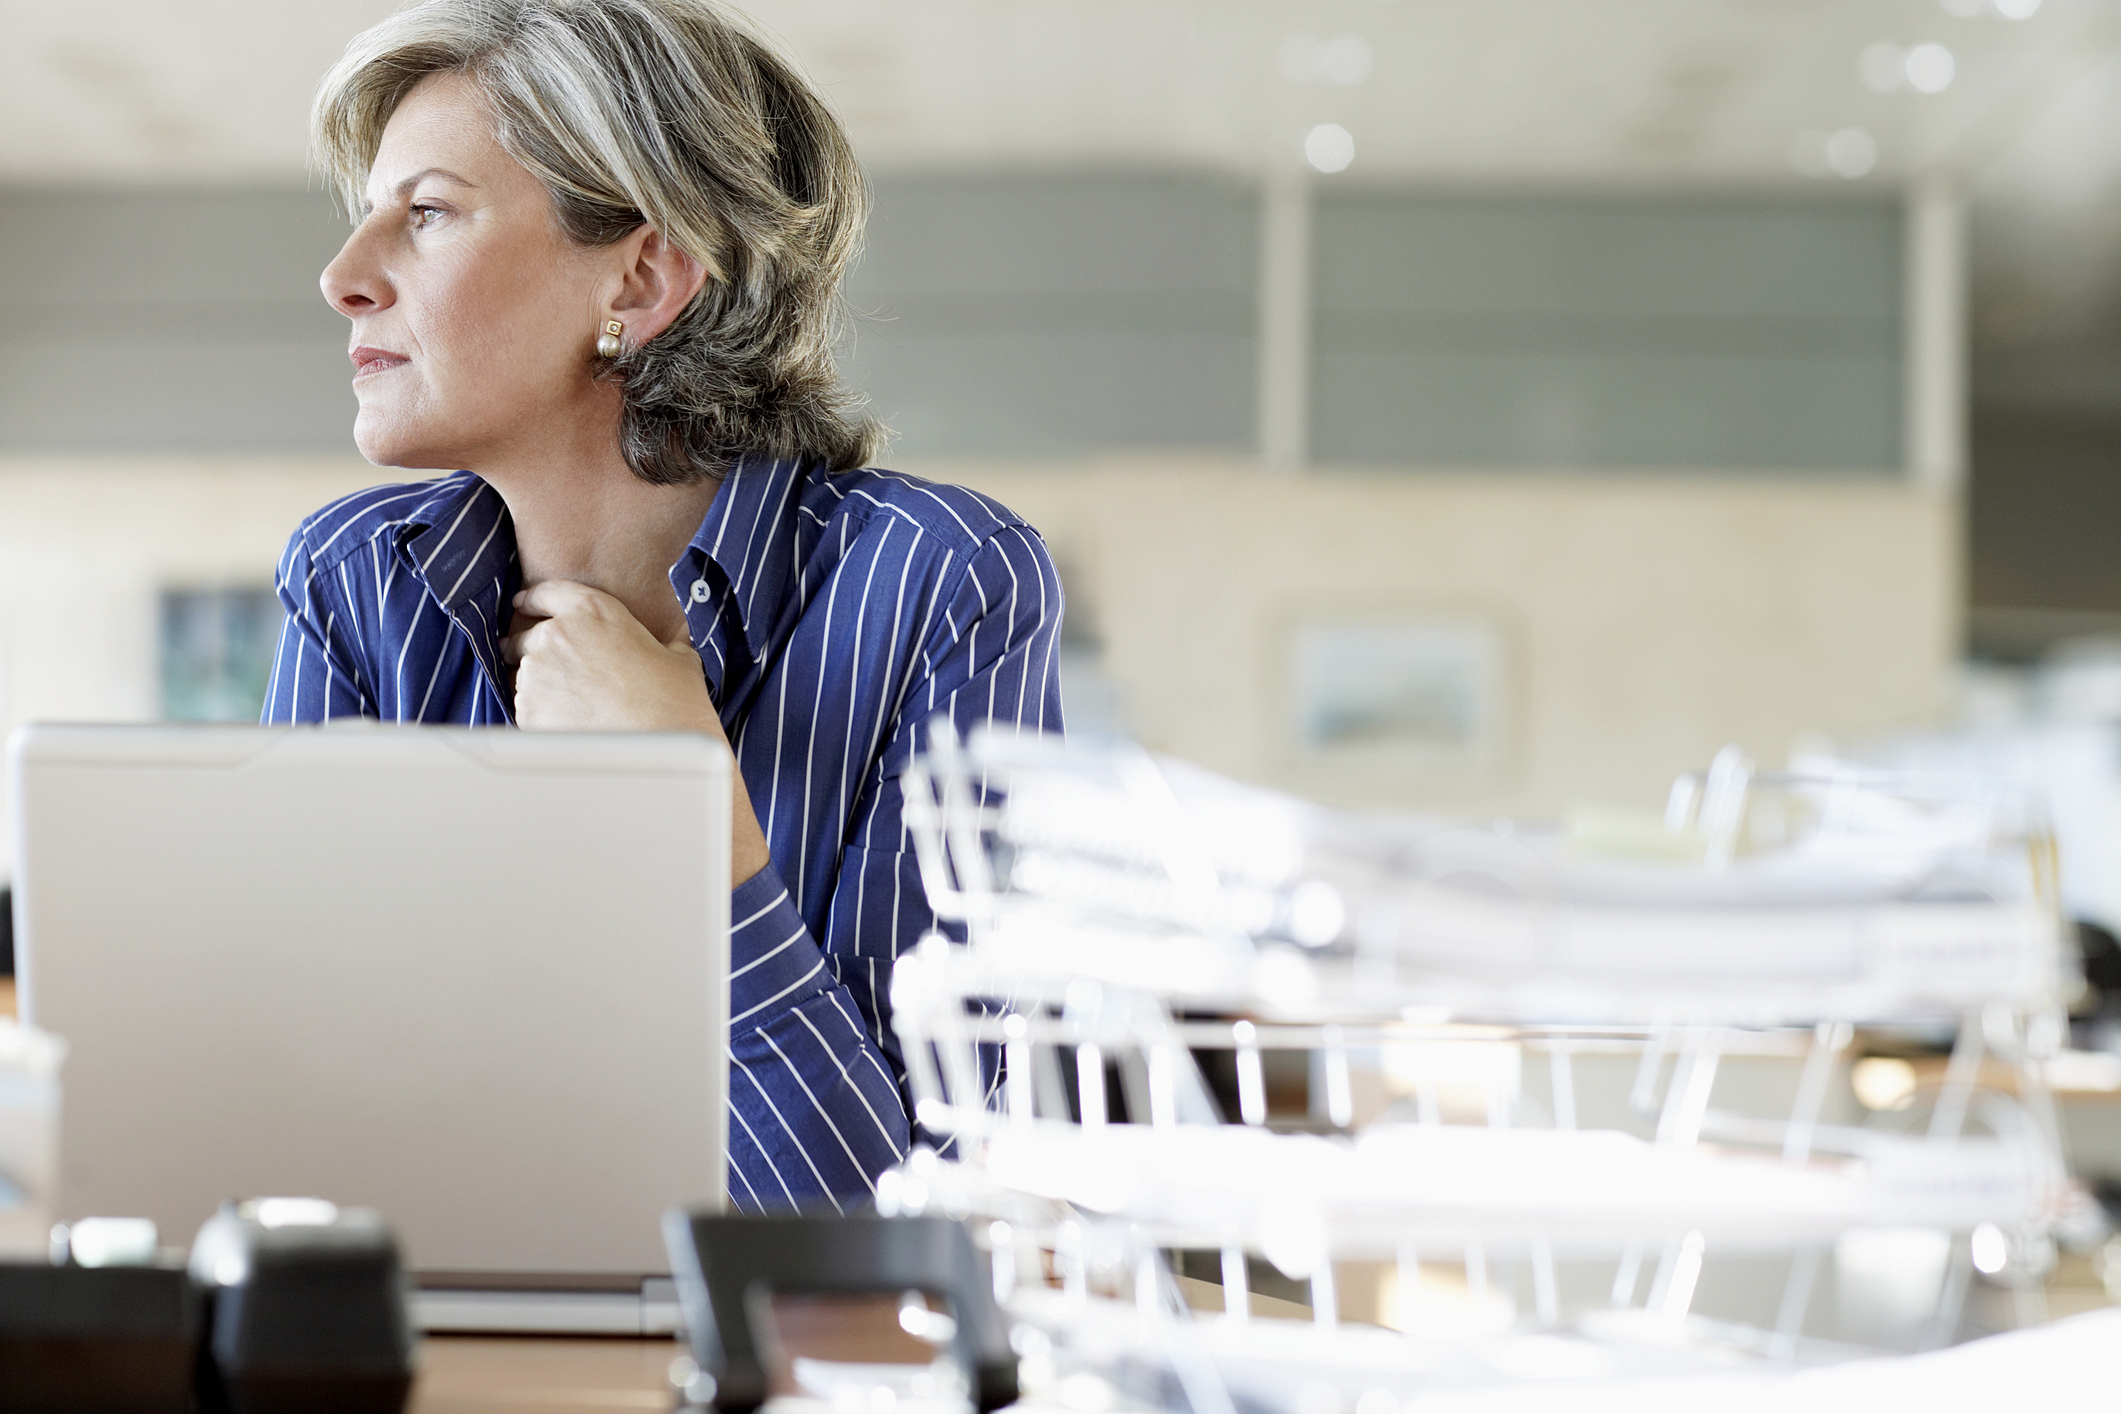 Women going through menopause at work can feel ignored (Thinkstock/PA)